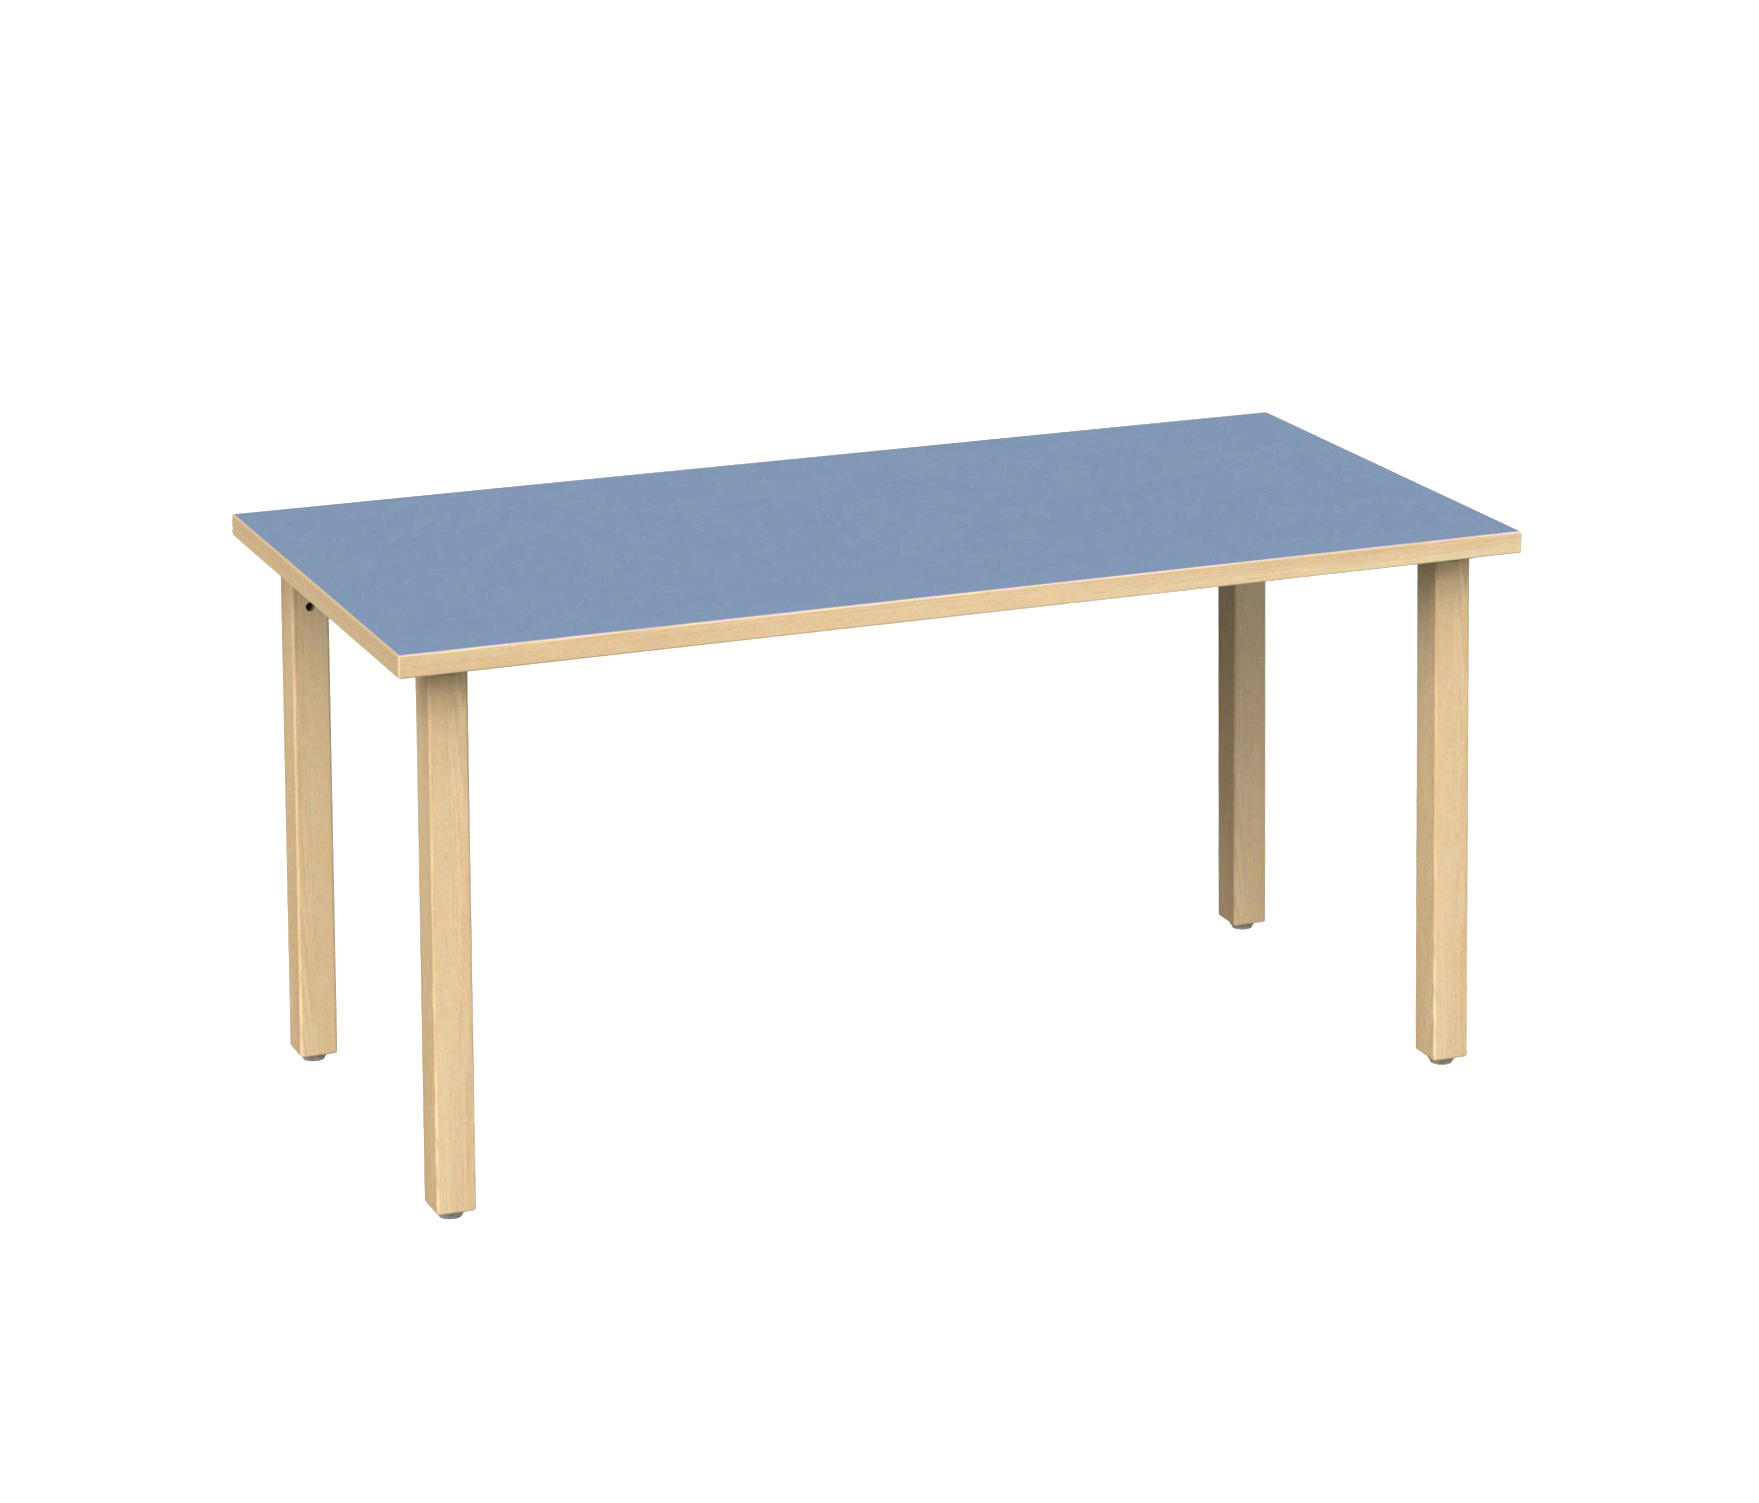 TABLE FOR CHILDREN 6012L73S  Kids tables from Woodi